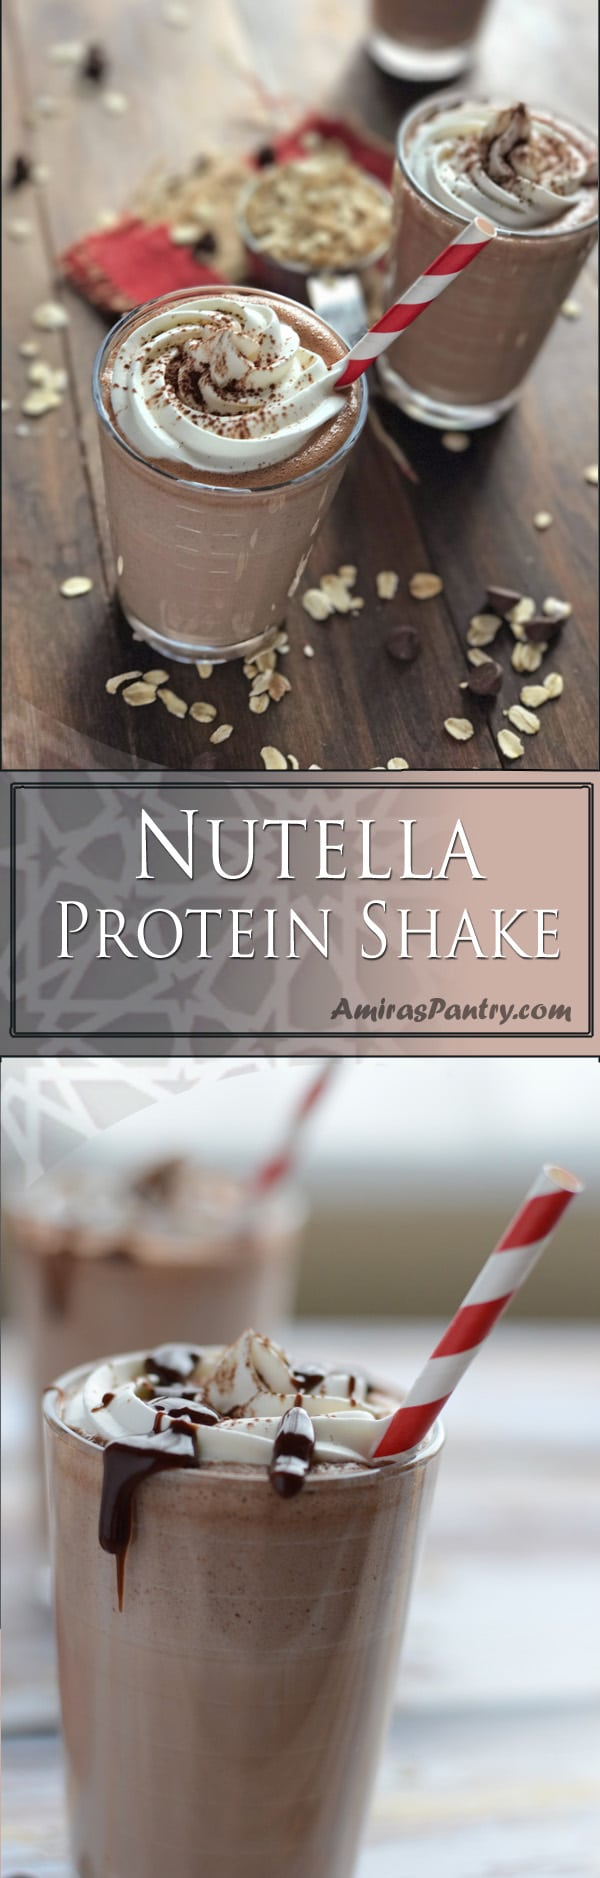 Nutella breakfast smoothie is perfect for breakfast or for an after school snack. Sweet, chocolate-y filling and banana-less kind of smoothie.